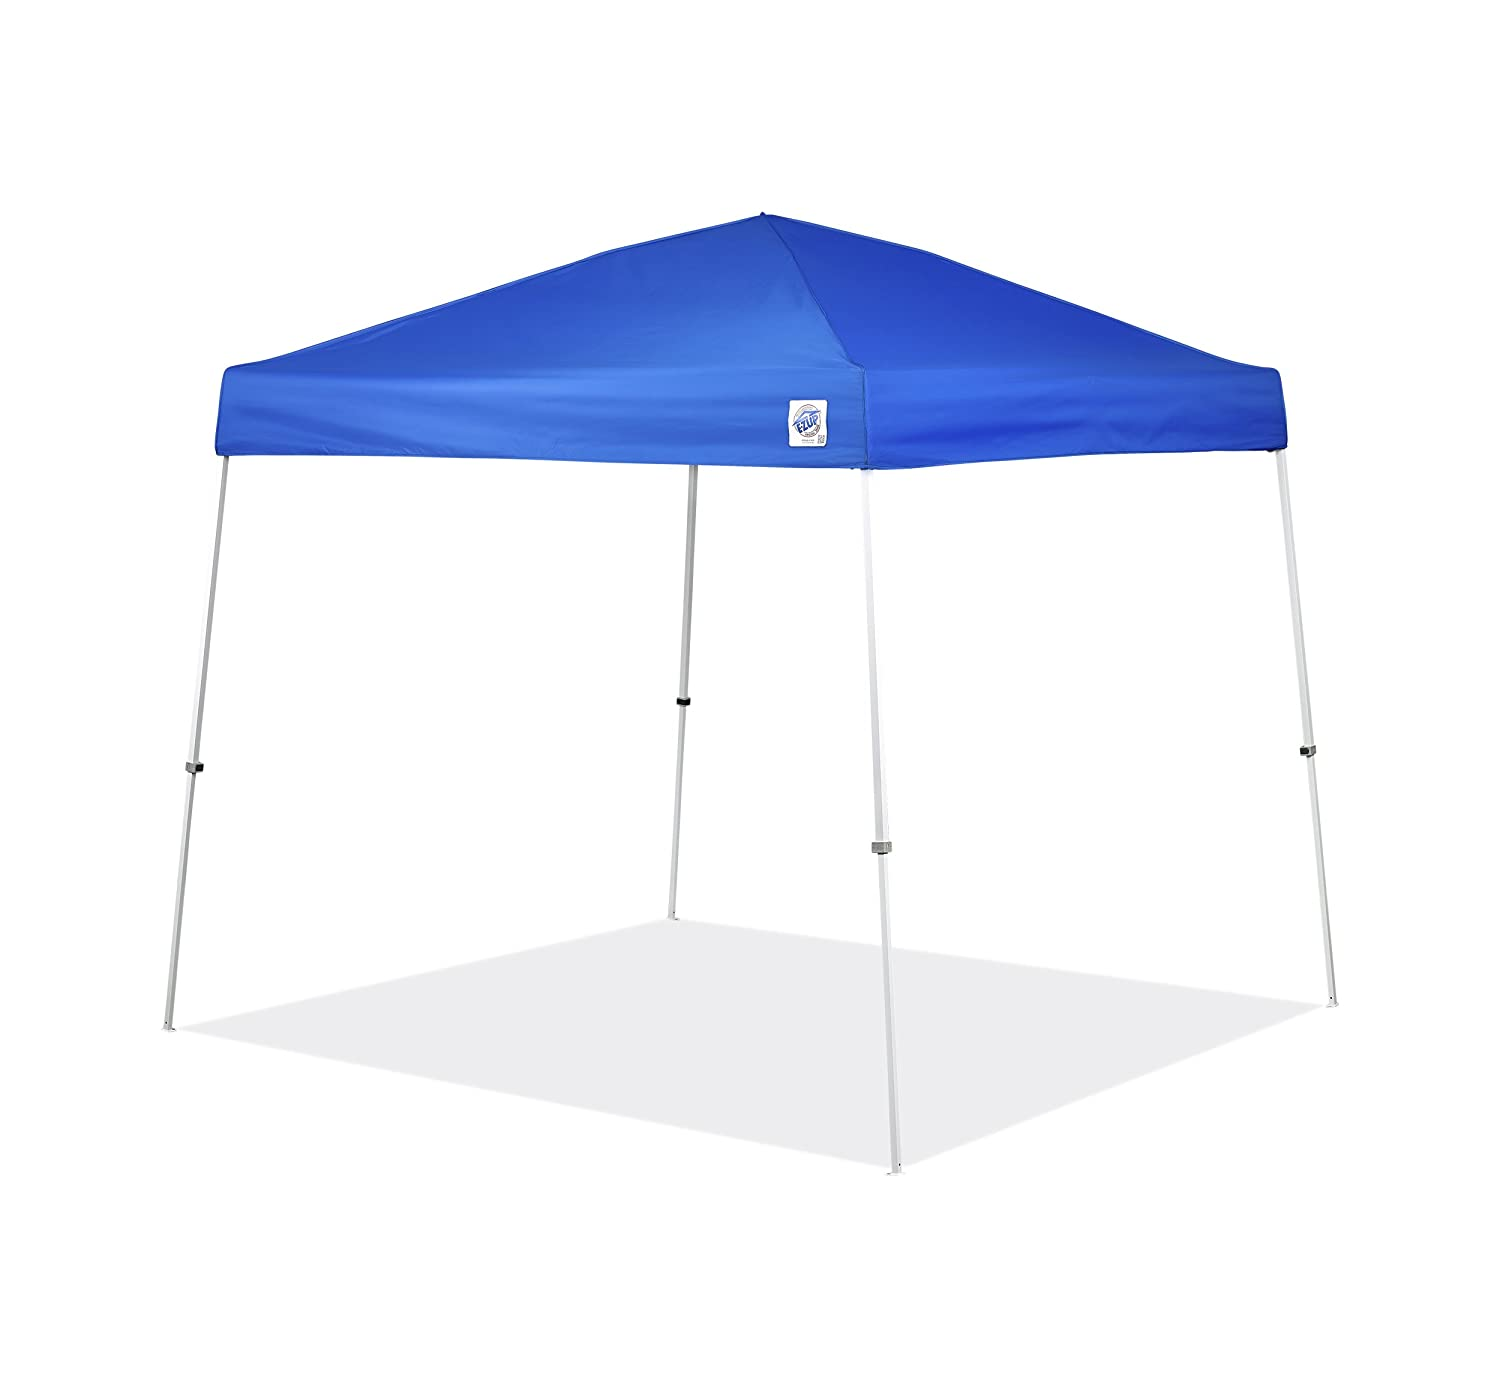 Amazon.com  EZ - Up Sierra II 12x12u0027 Shelter  Sun Shelters  Garden u0026 Outdoor  sc 1 st  Amazon.com & Amazon.com : EZ - Up Sierra II 12x12u0027 Shelter : Sun Shelters ...